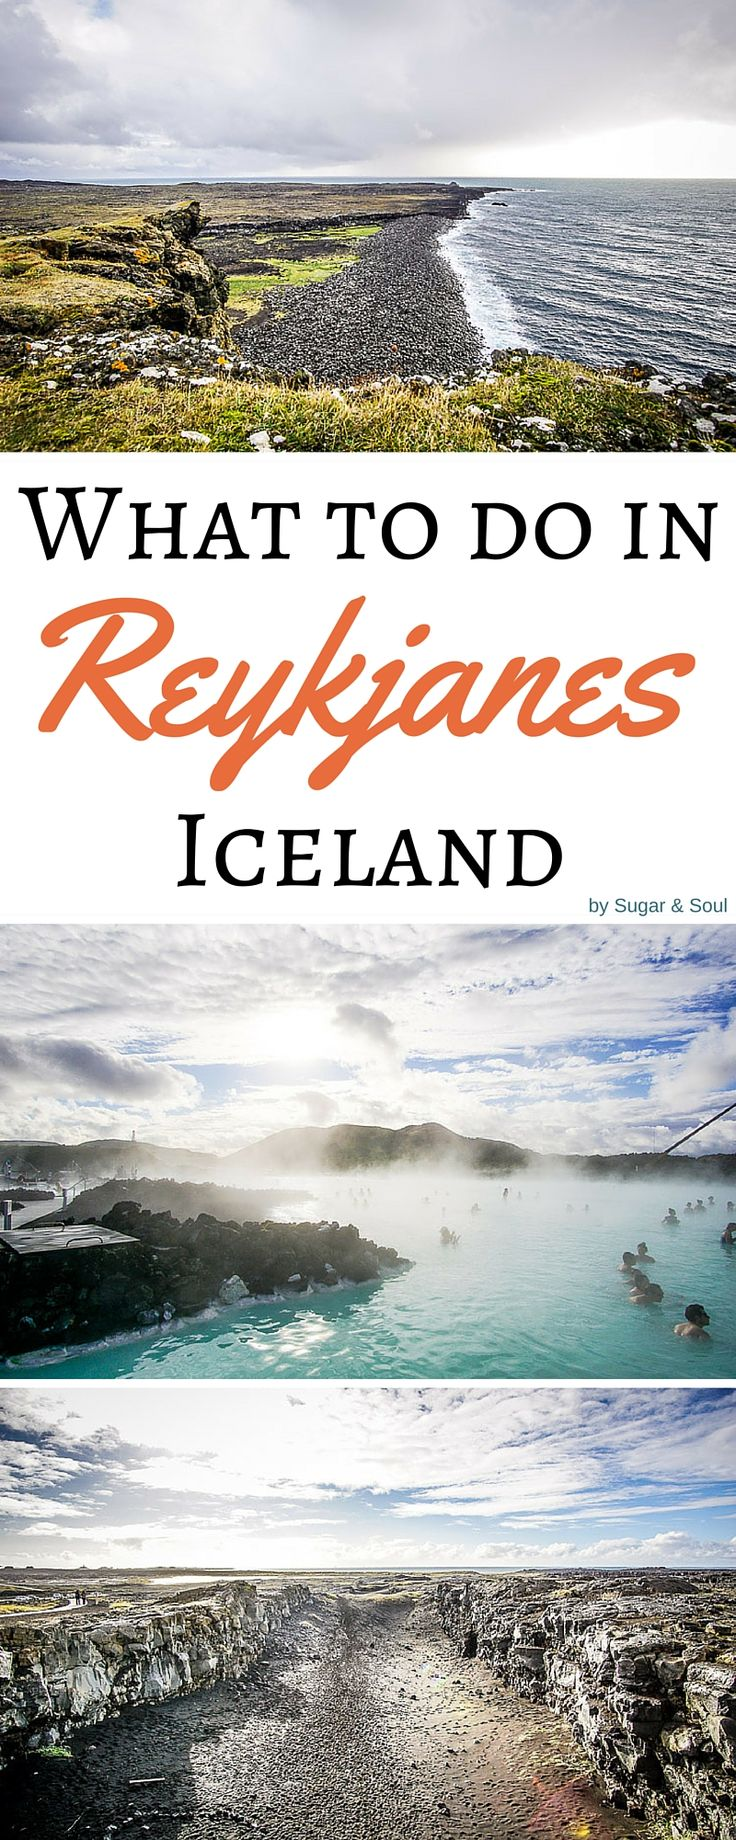 There's so much more to the Reykjanes Peninsula in Iceland than the Blue Lagoon! While the geothermal waters are definitely a MUST, don't forget to visit the quaint little fishing villages, dramatic sea cliffs, and the bridge between continents and so much more!